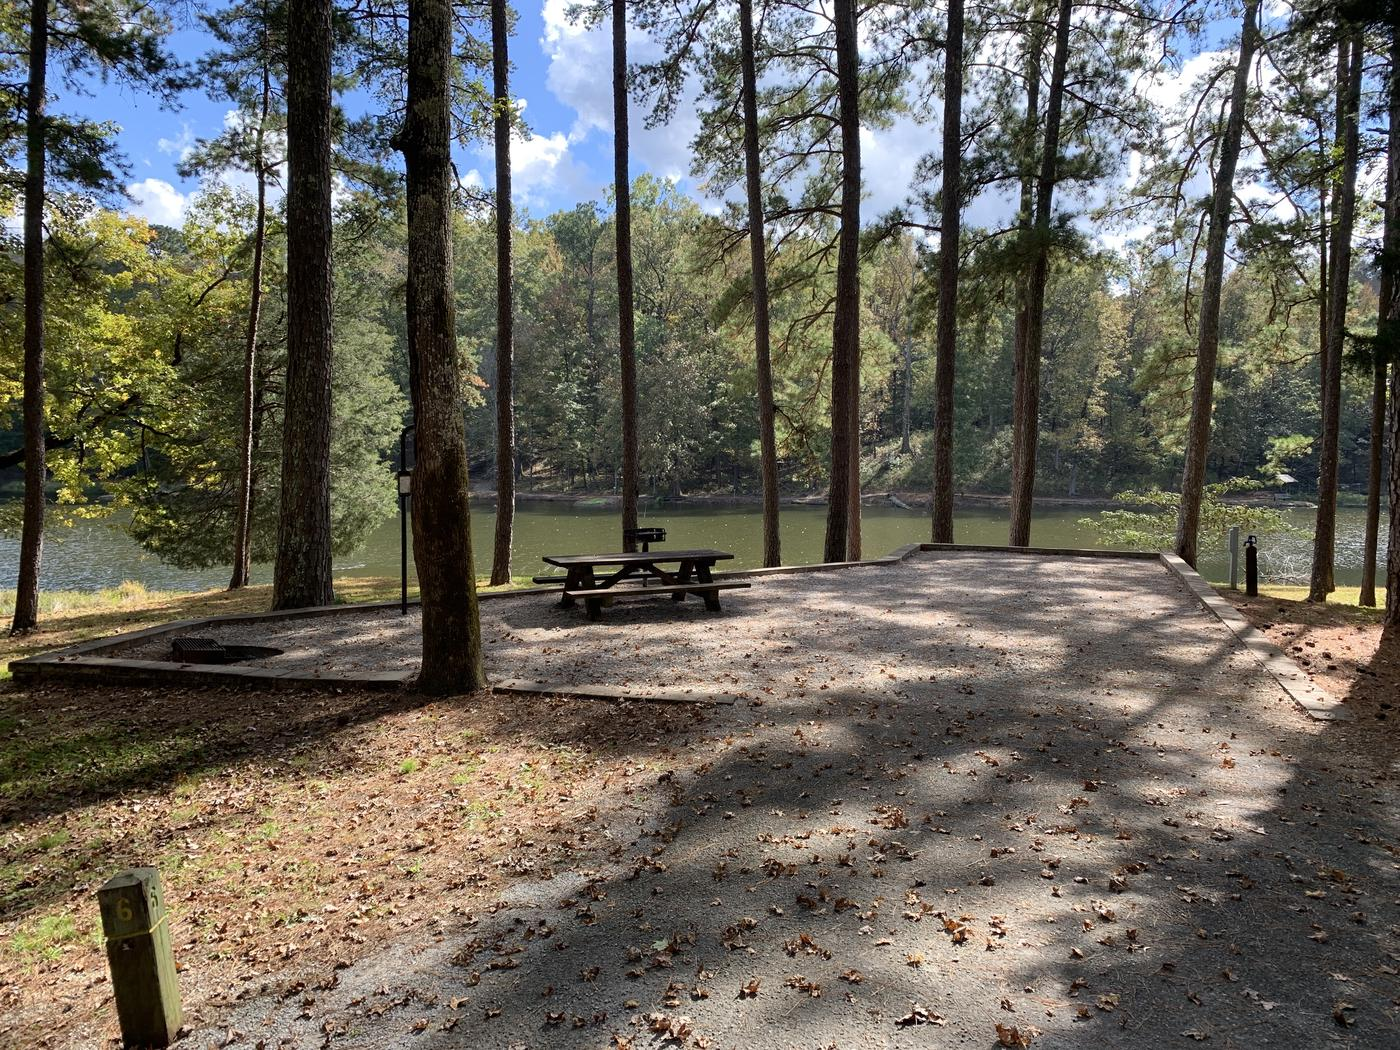 Campsite #6Campsite #6 at Choctaw Lake campground